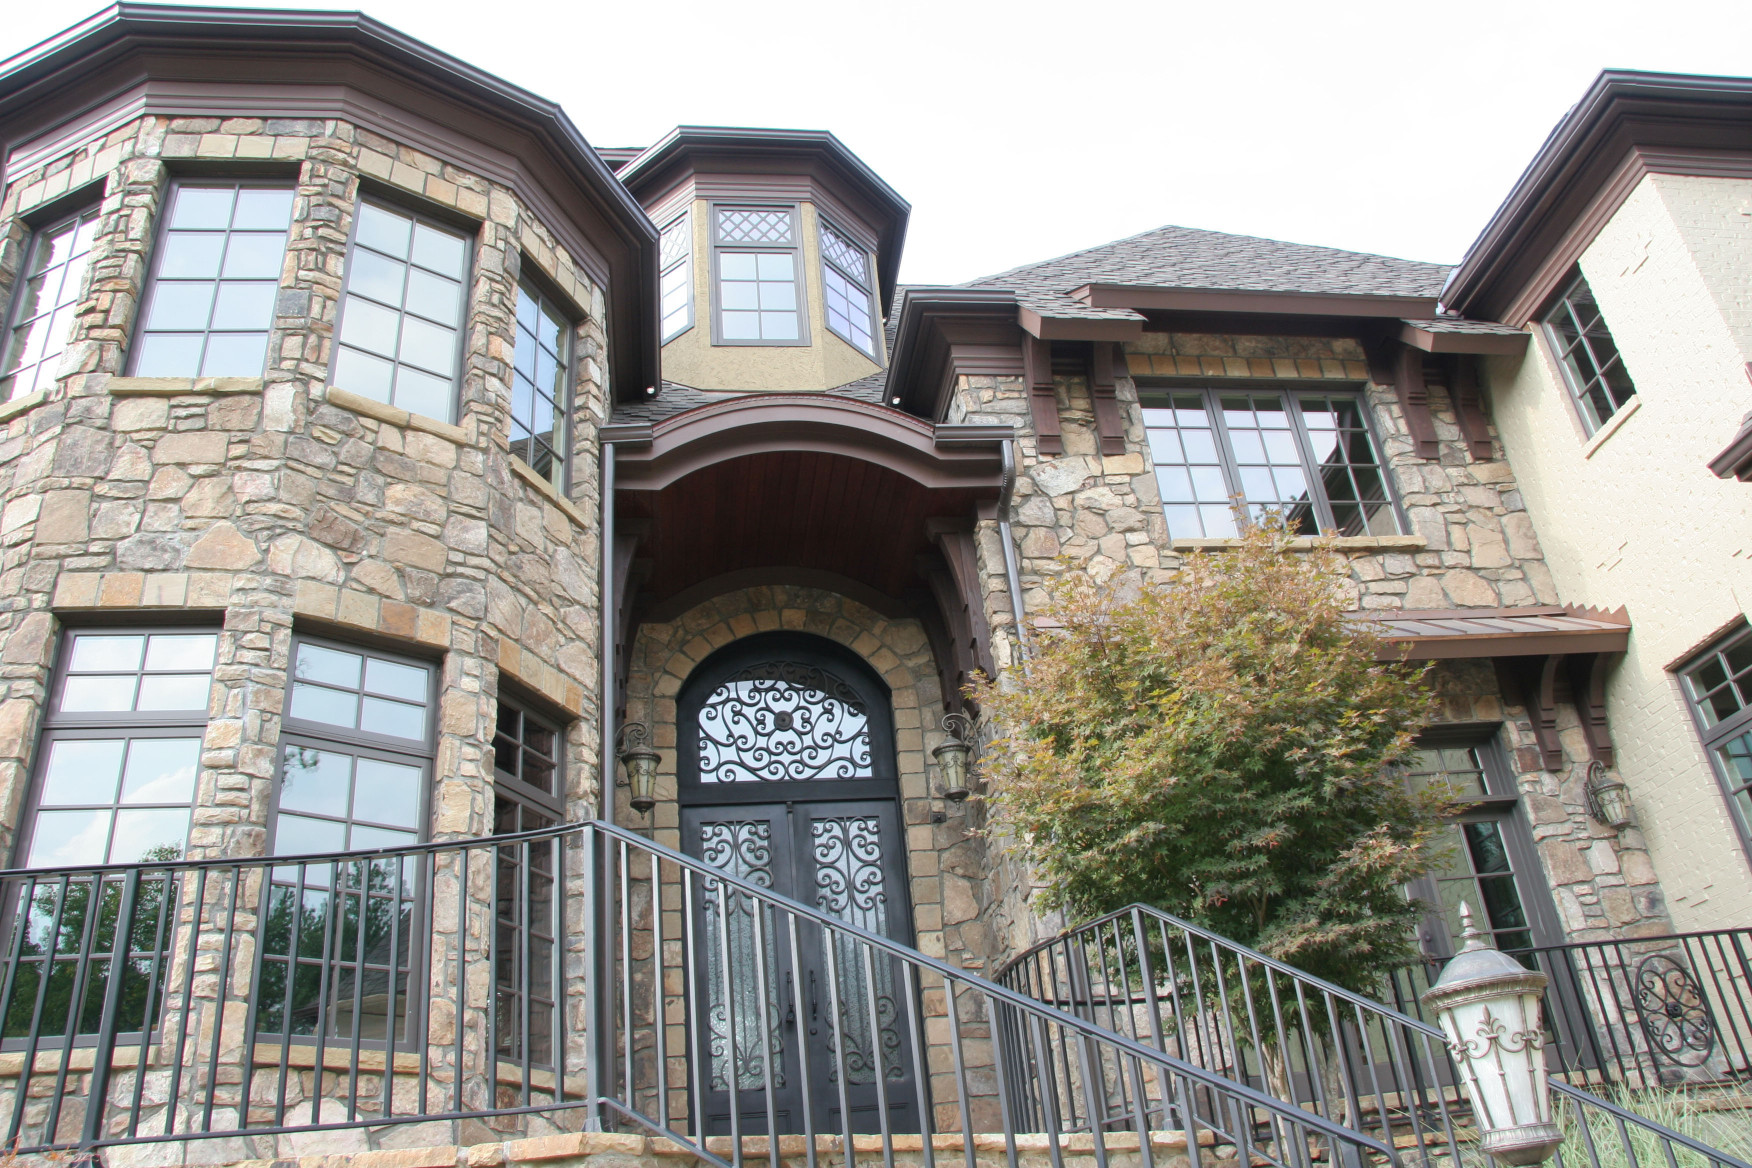 Corbels and Brackets custom designed for this home are a great example of how our products can be just the right touch for your home.